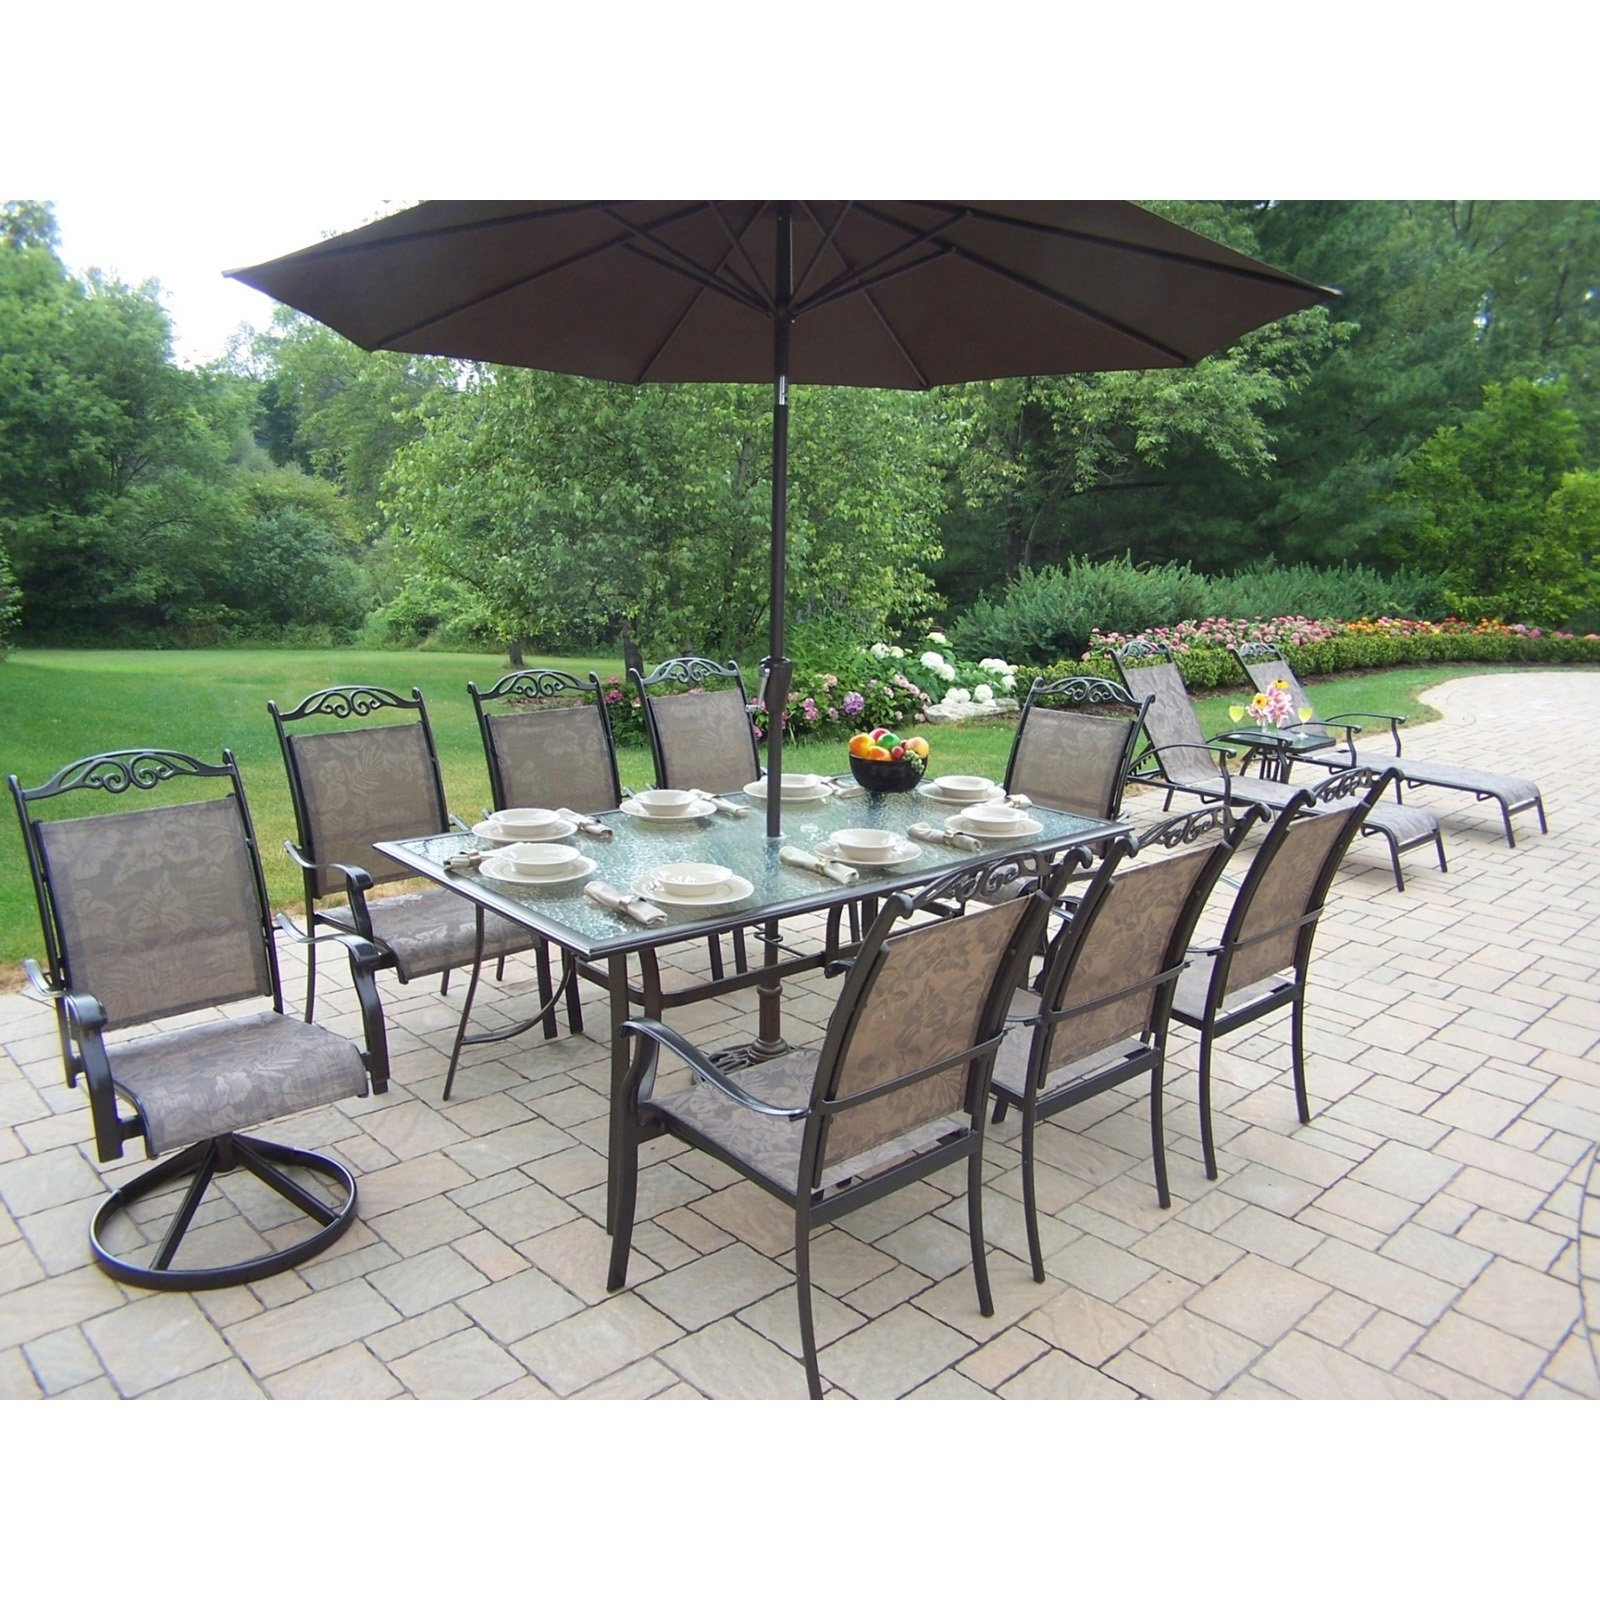 Patio Dining Sets With Umbrellas Pertaining To Favorite Patio Furniture Walmart Patio Furniture Sets Patio Dining Luxury (View 5 of 20)